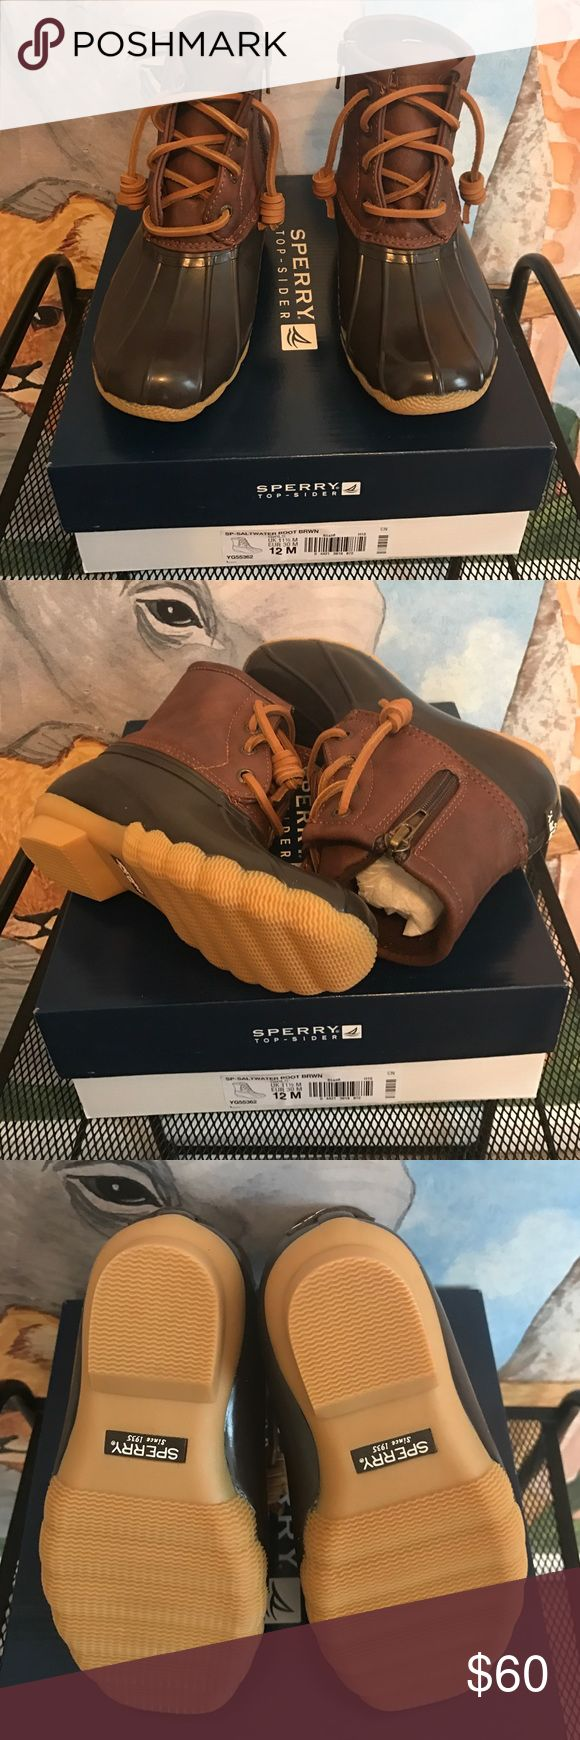 Sperry Top-Sider Boots Brand new in box 📦 Sperry Top-Sider Saltwater Boot Brown 12c. Sperry Top-Sider Shoes Rain & Snow Boots